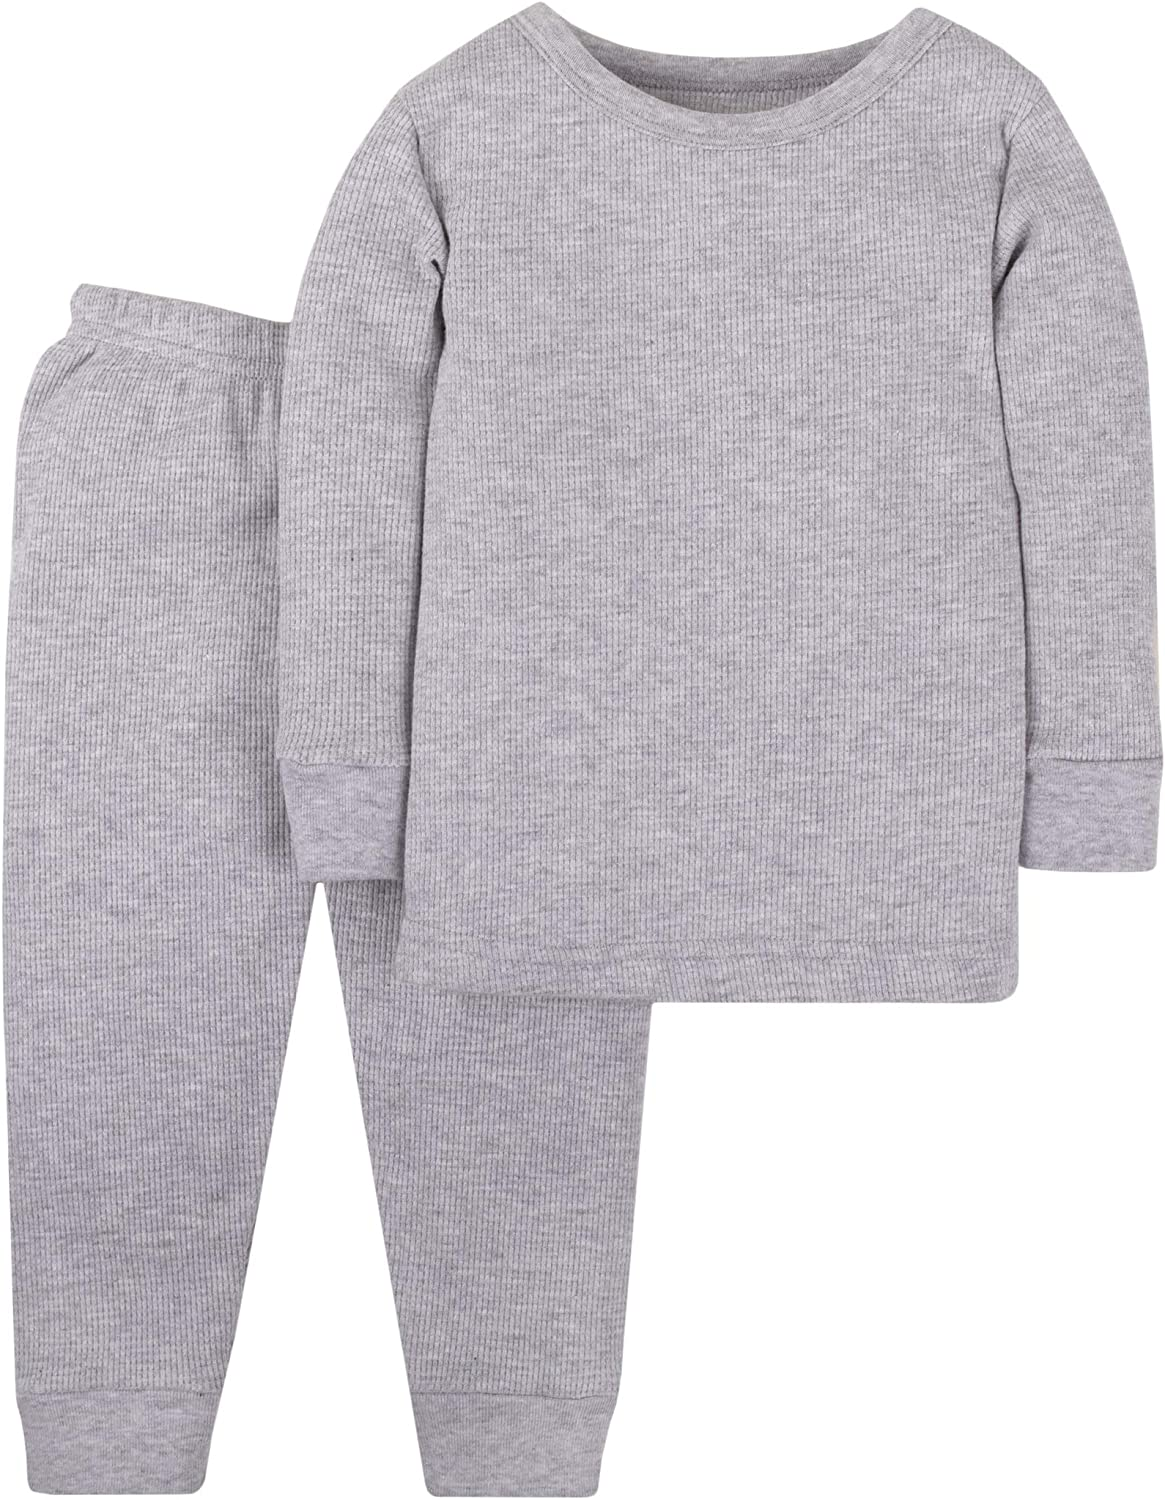 Lamaze Organic Baby Organic Baby/Toddler Girl, Boy, Unisex Long Johns